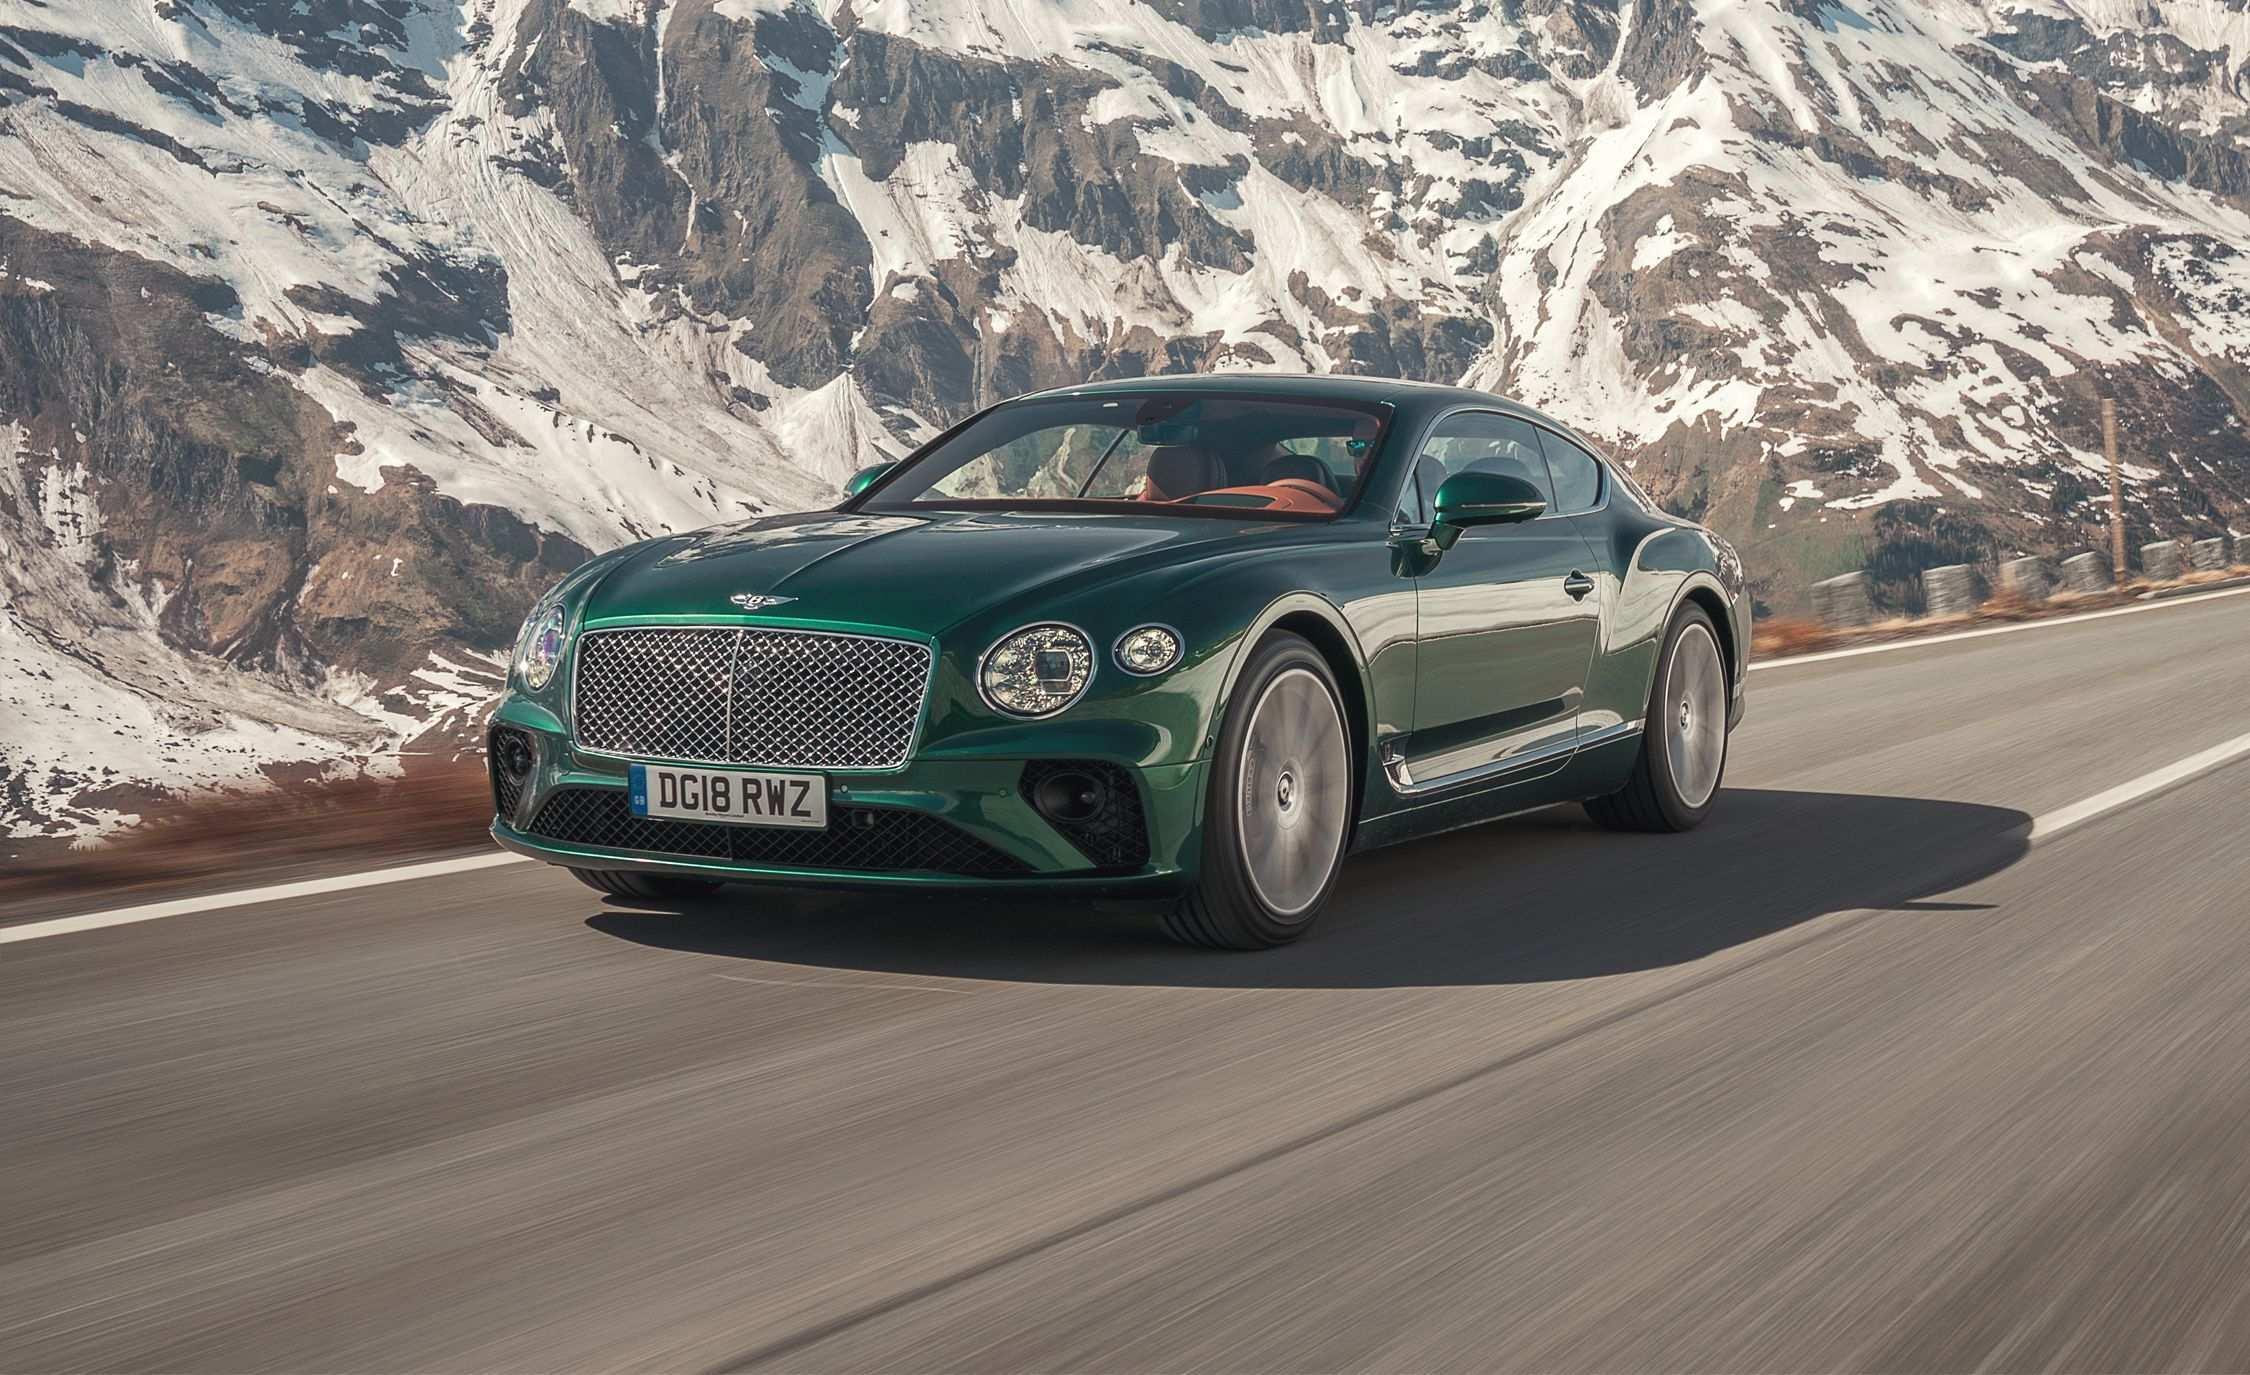 48 All New 2019 Bentley Continental Gt Msrp Spy Shoot with 2019 Bentley Continental Gt Msrp